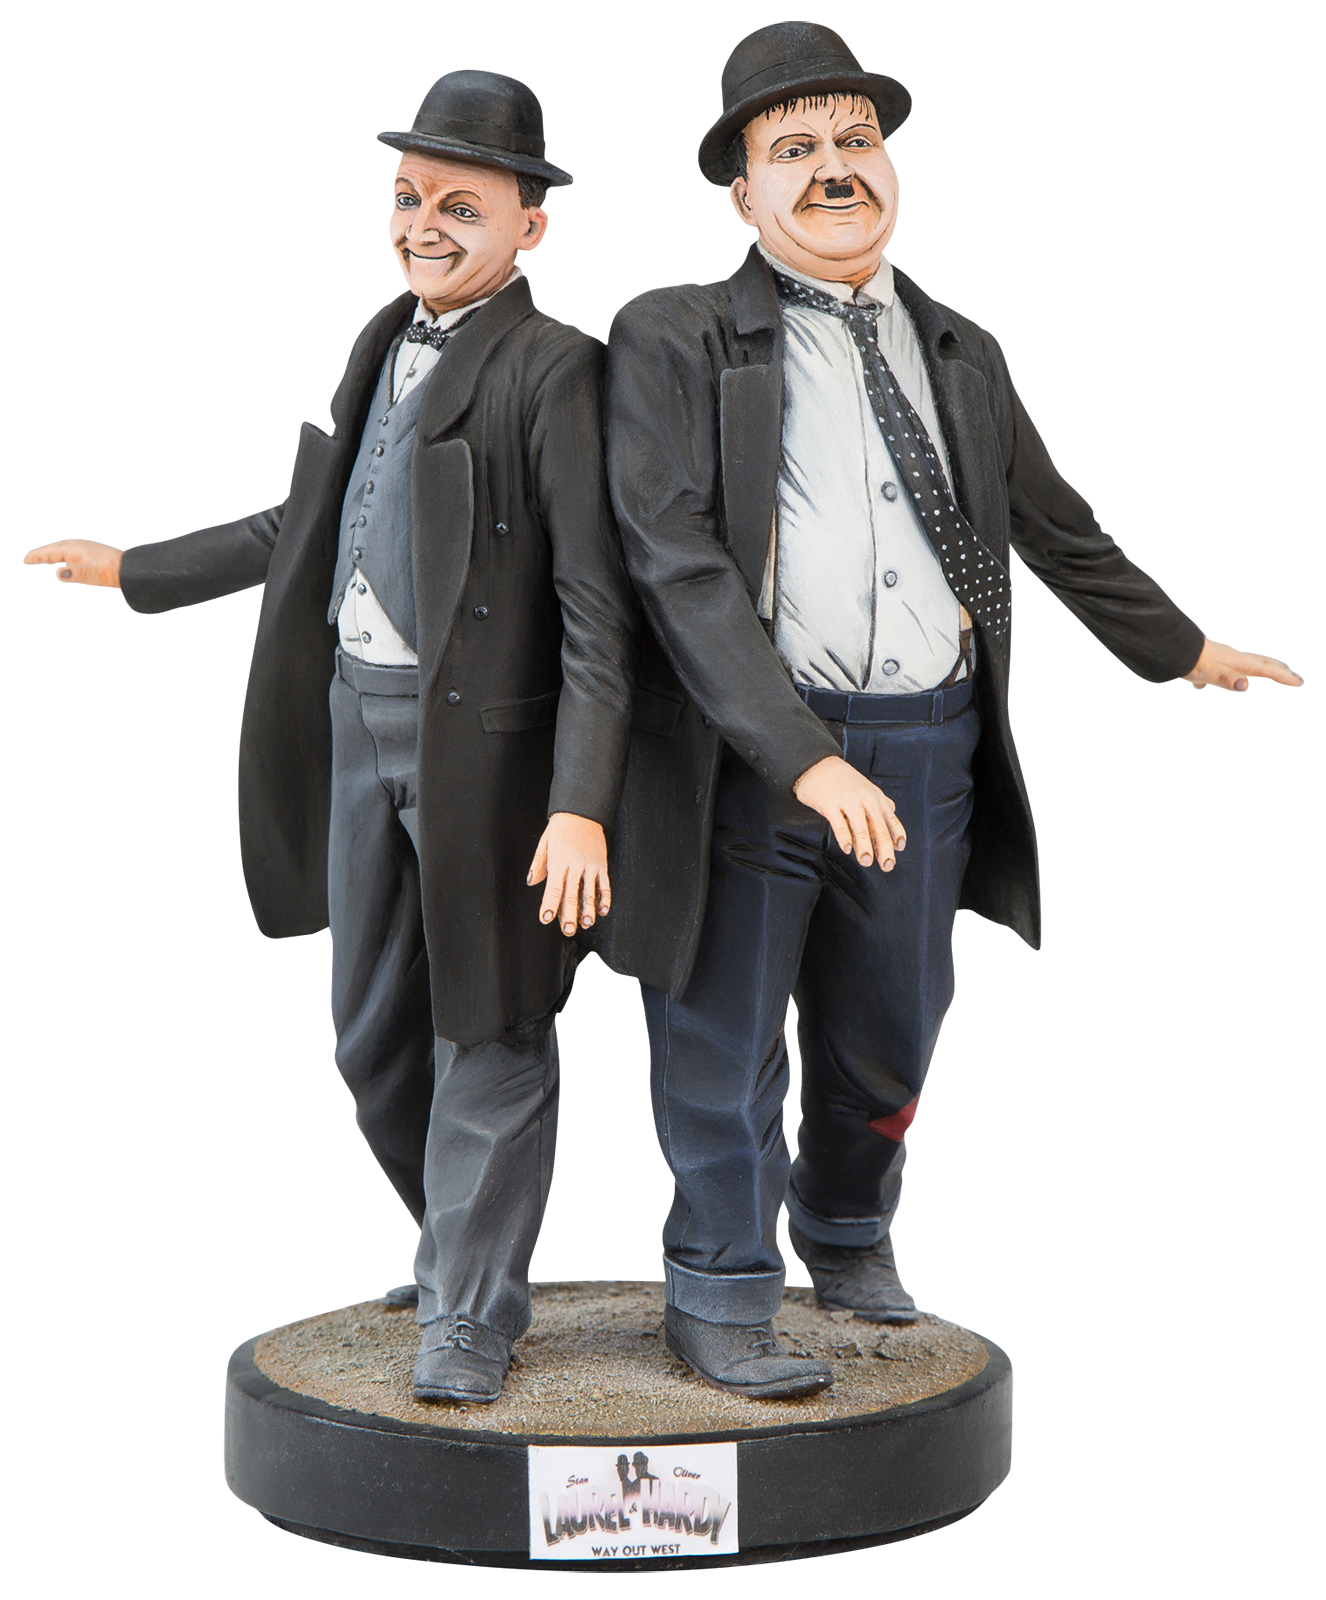 Laurel and hardy png. Michael welch sculptures way